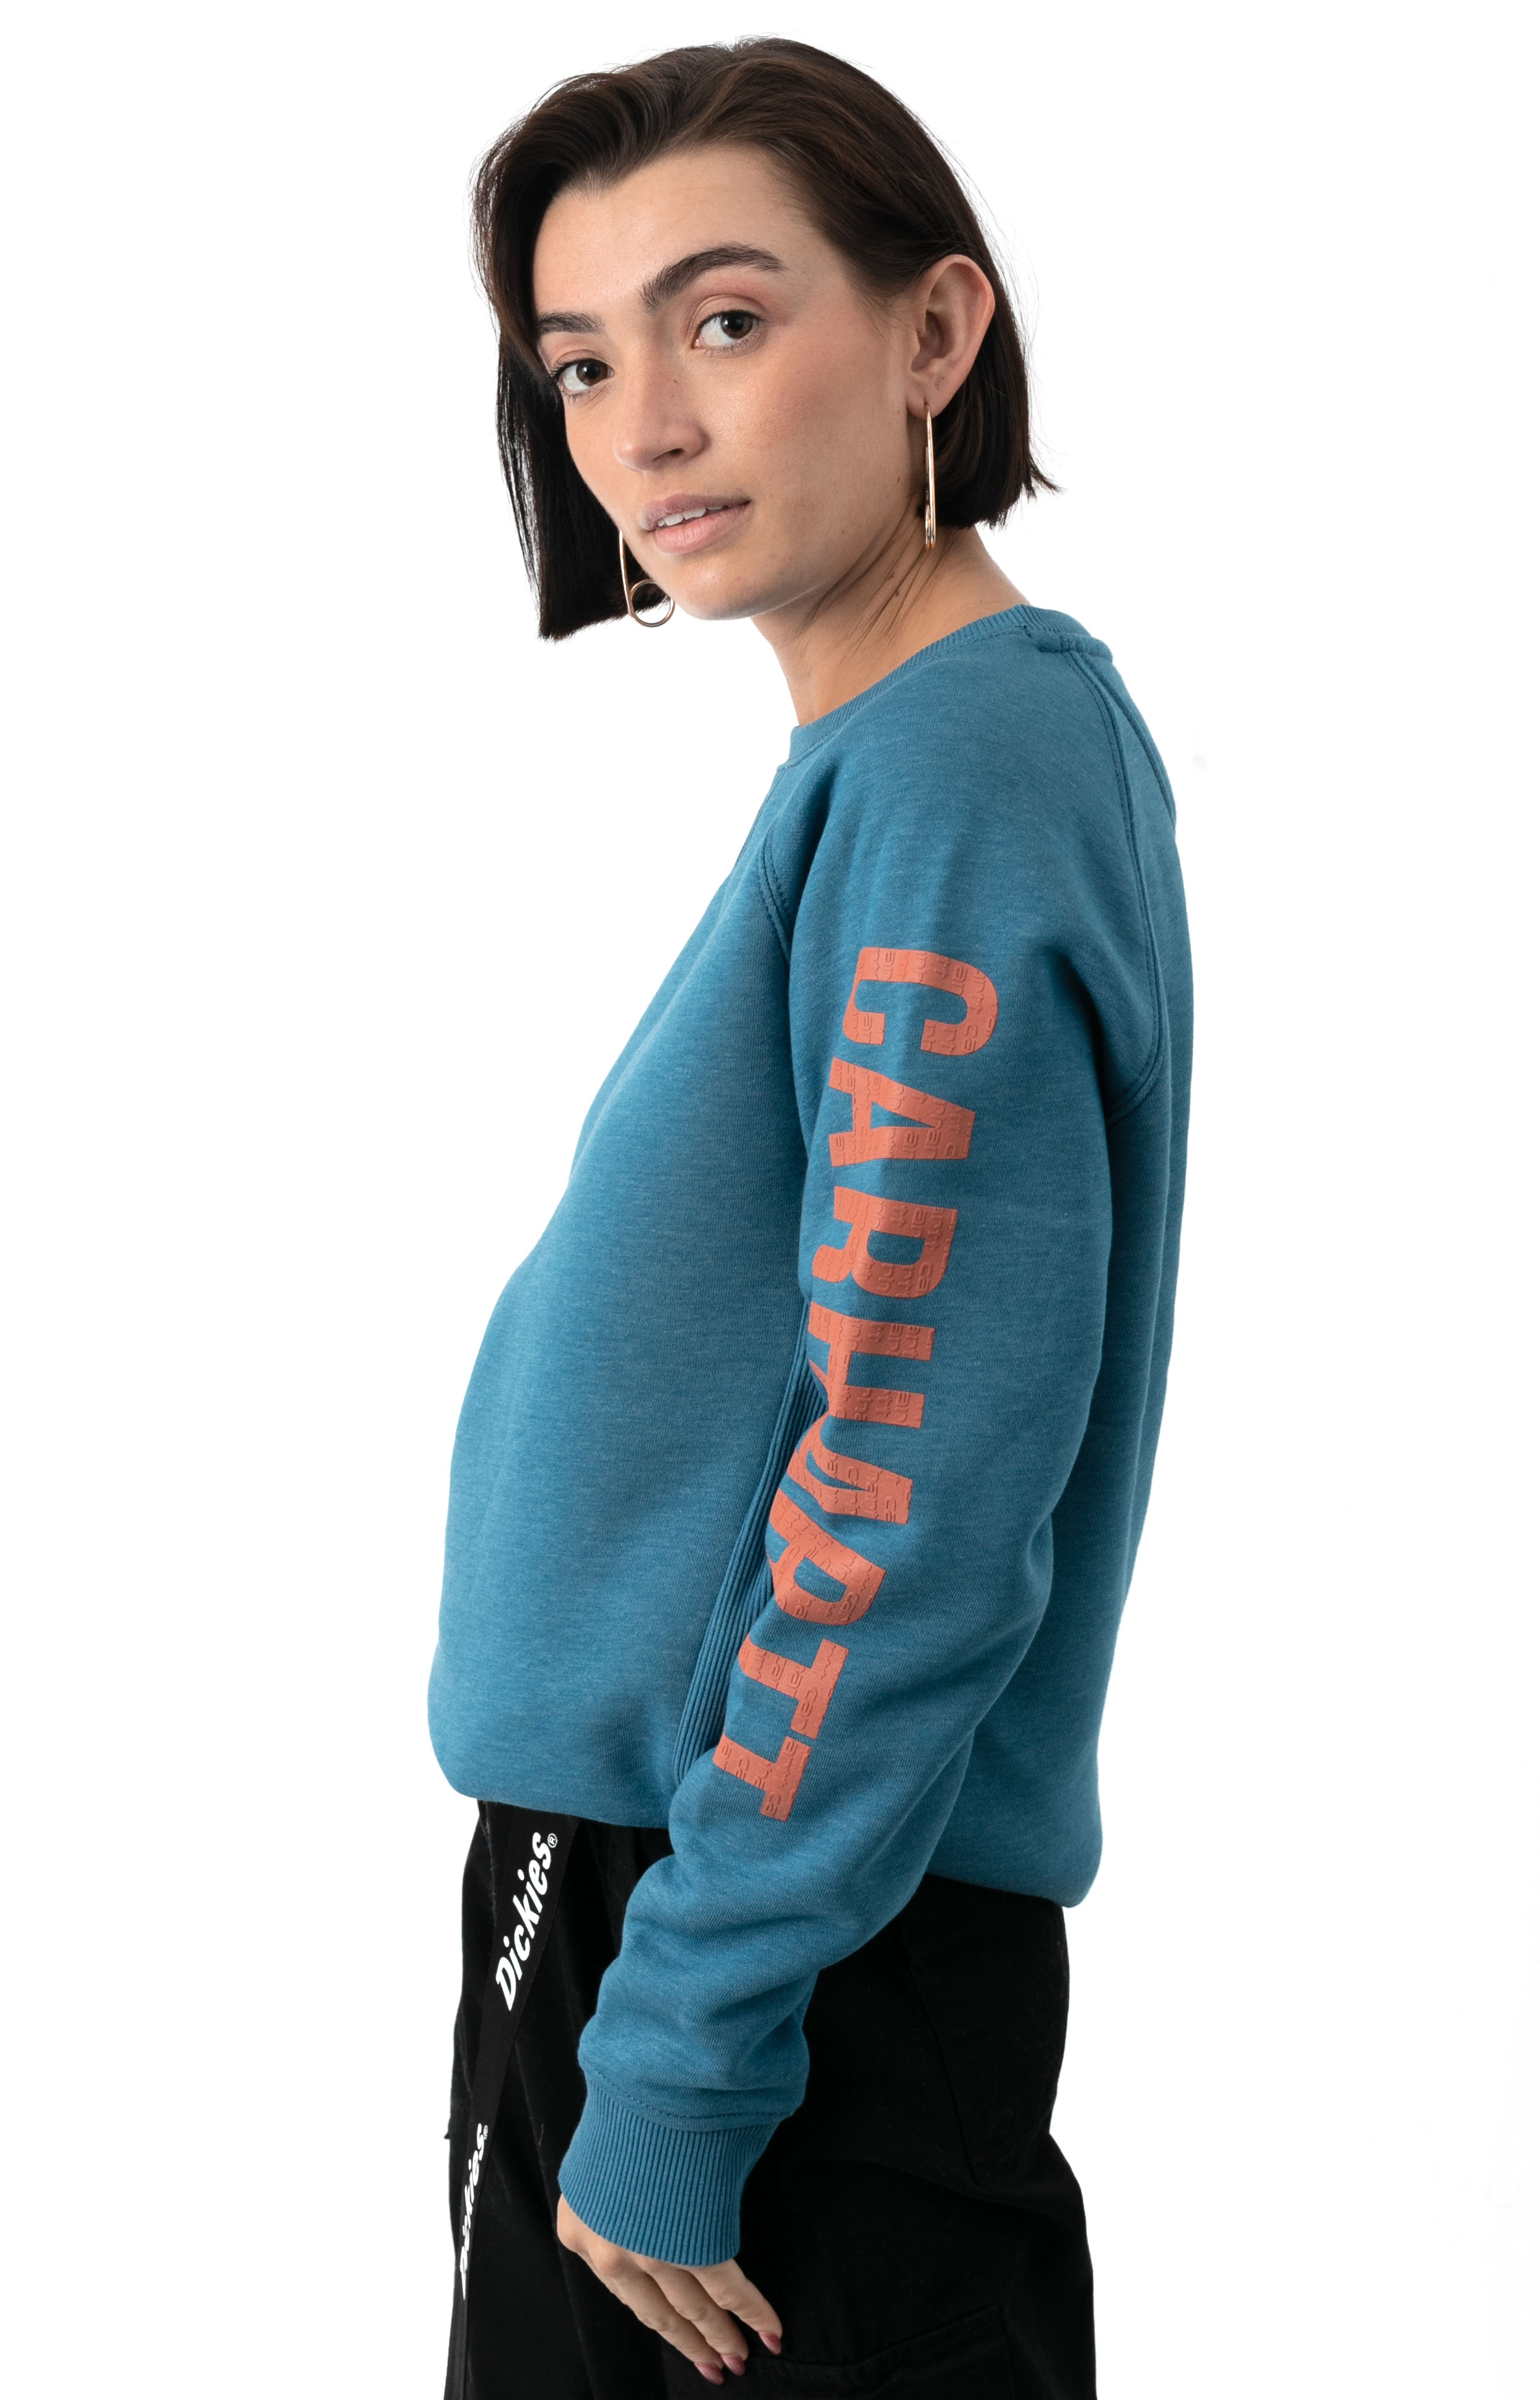 (104410) Relaxed Fit MW Graphic Sweatshirt - Ocean Blue Heather   2